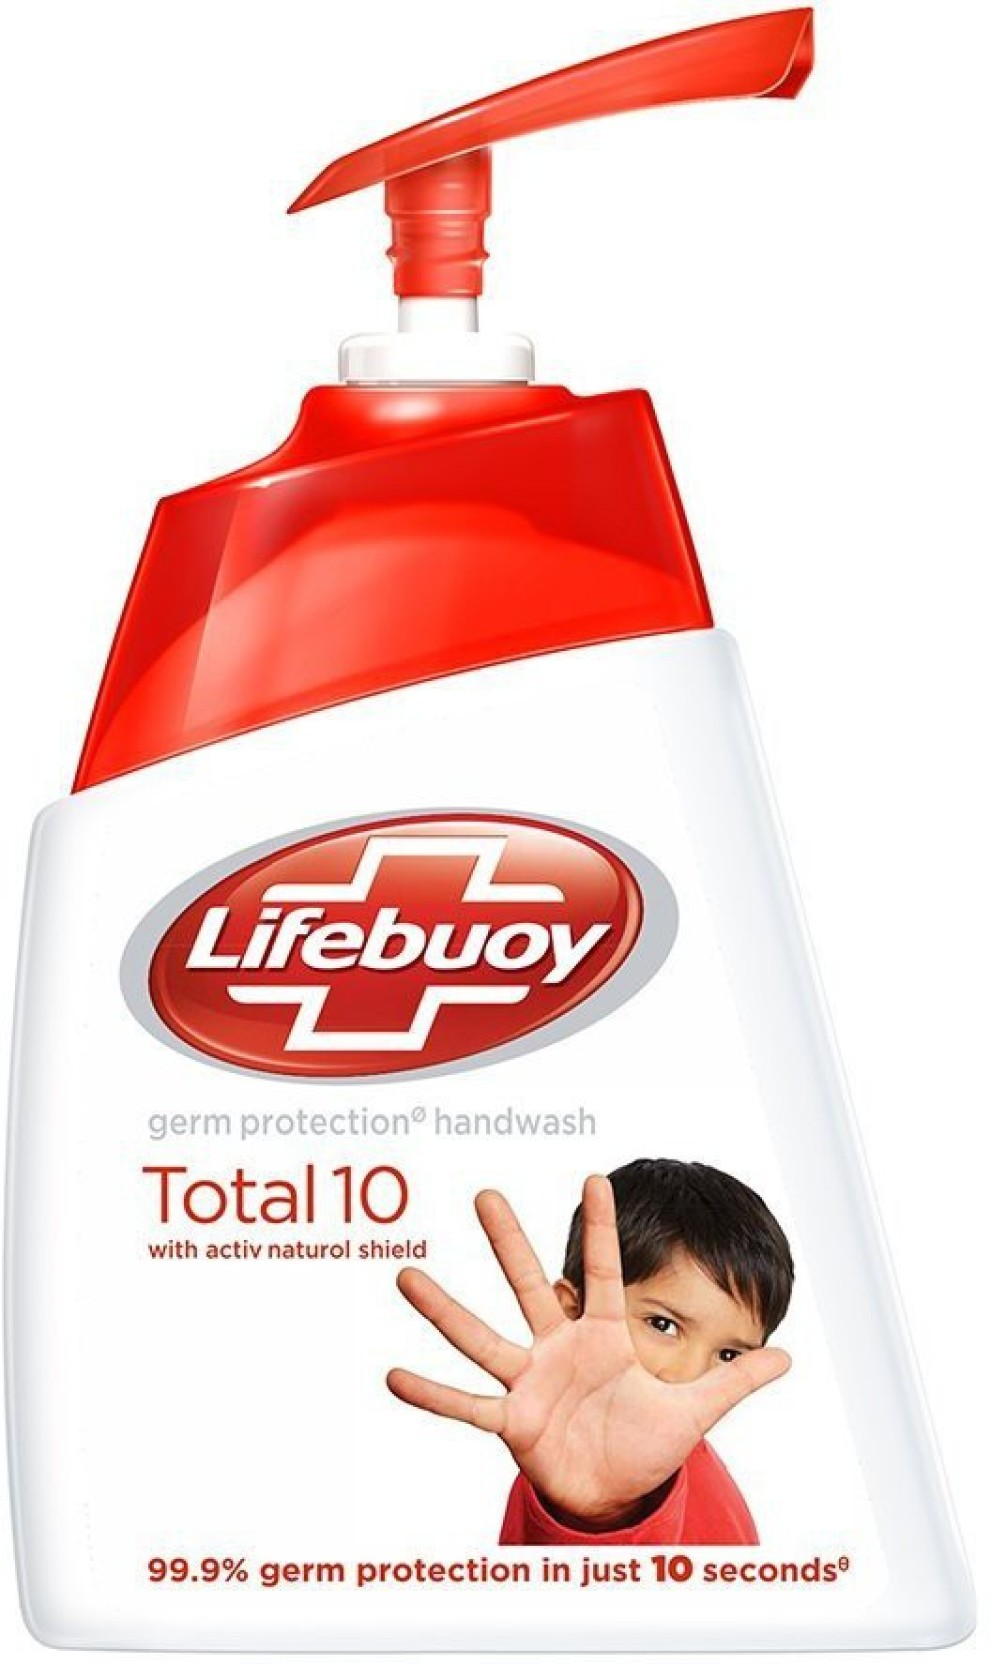 Lifebuoy Total 10 Hand Wash Reviews, Price, Benefits: How To Use It?